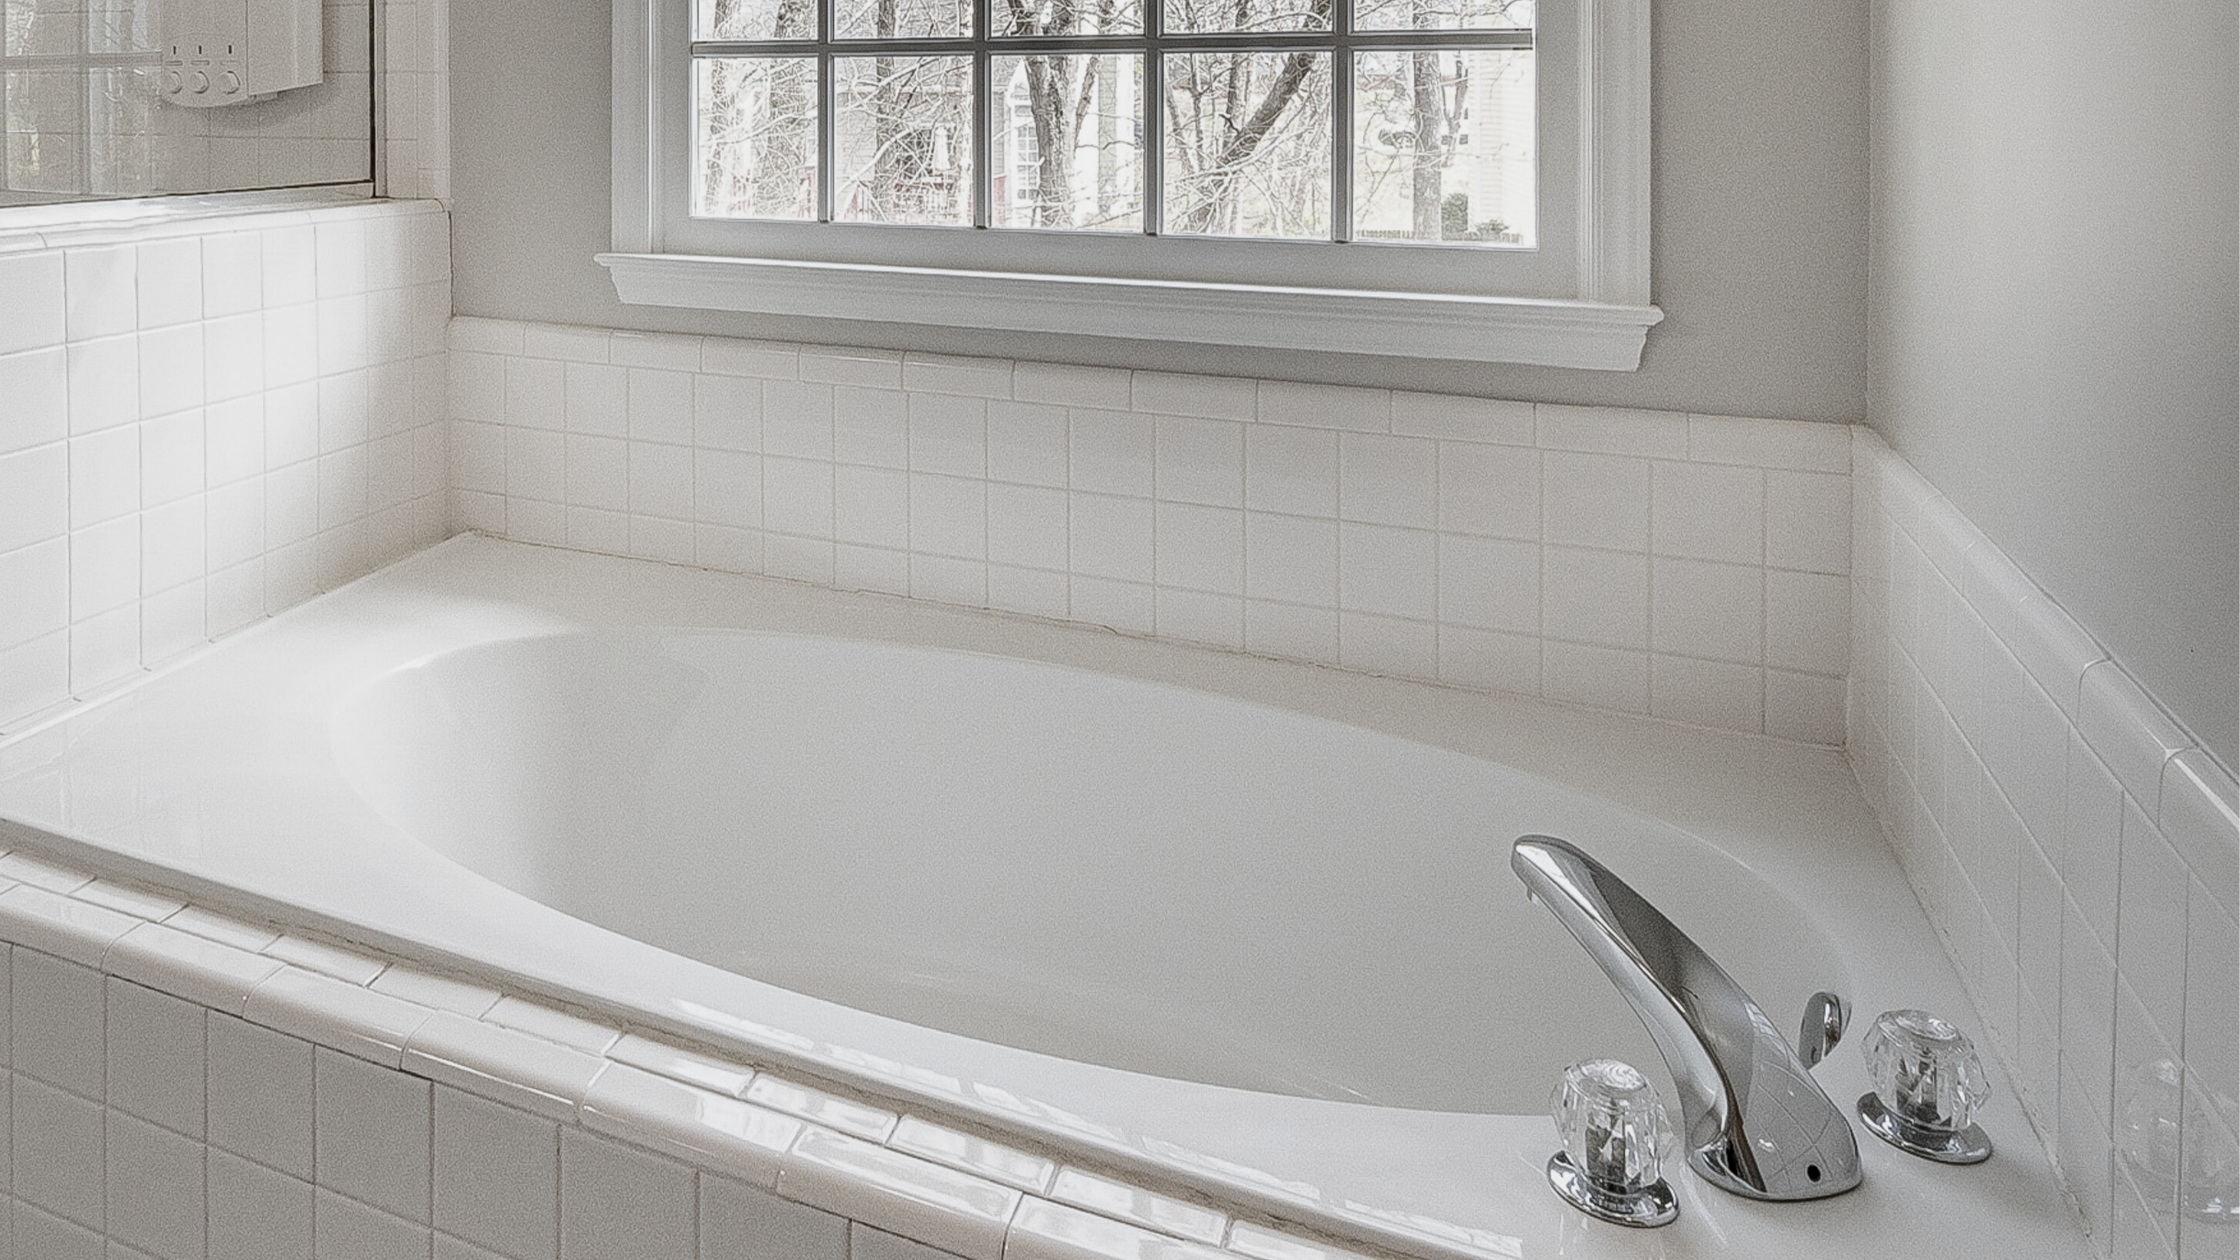 Tile Wainscoting Cap And Molding Ideas To Complete Your Bathroom Trubuild Construction